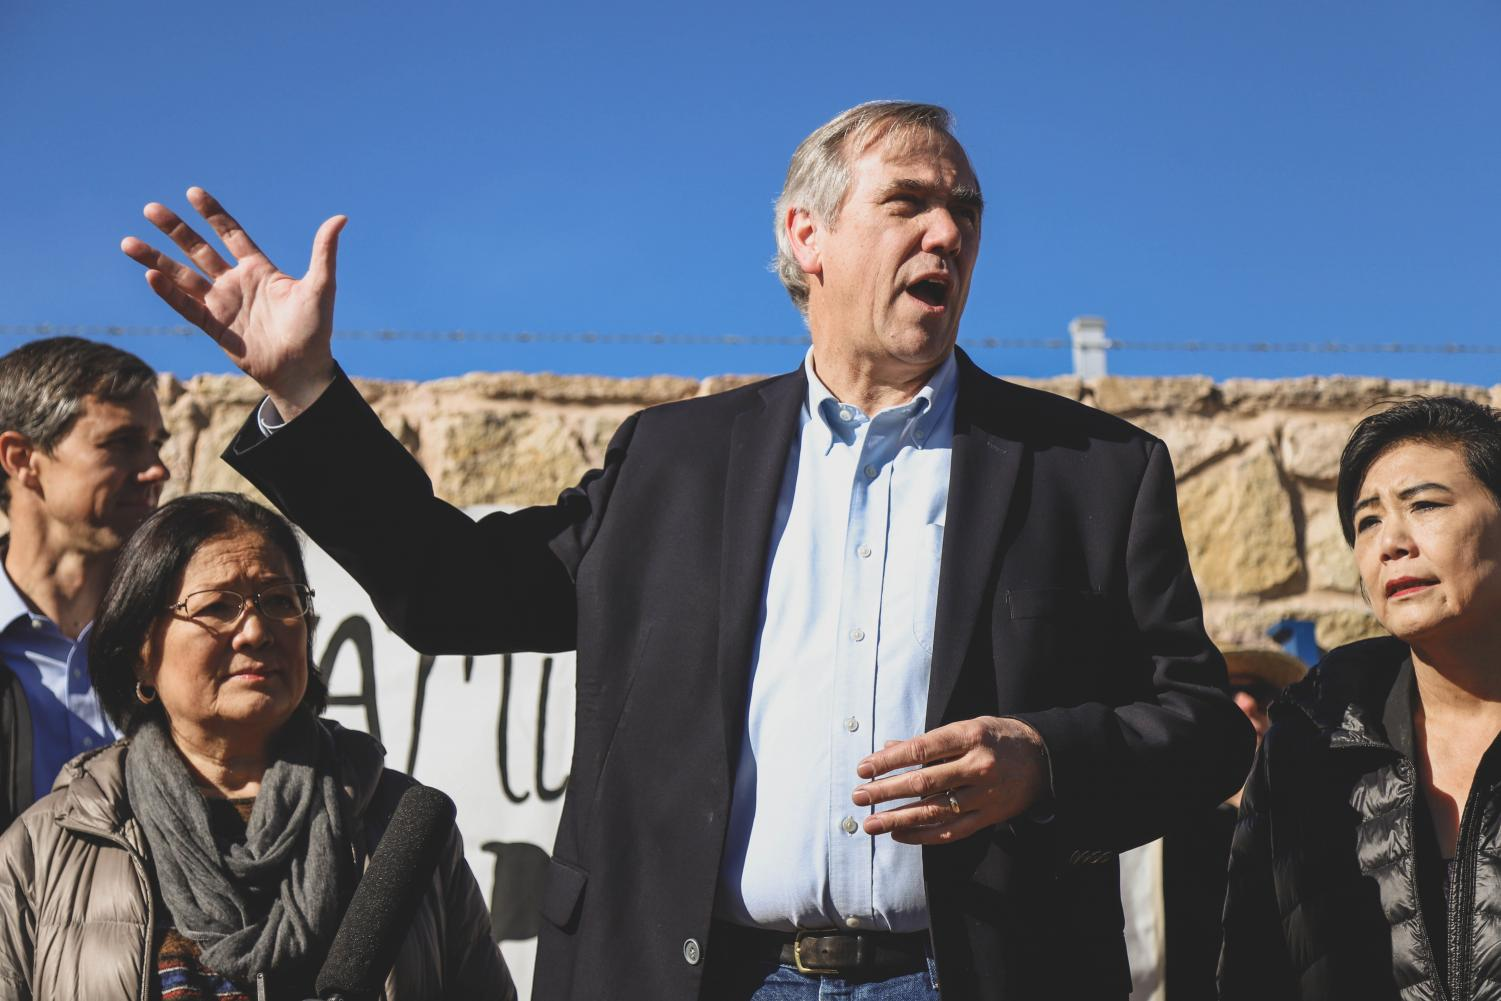 Senator+Jeff+Merkley+addresses+the+media+at+a+rally+outside+of+the+Tornillo+Port+of+Entry+on+Saturday+morning%2C+Dec.+15.+%0A%E2%80%8F%0A